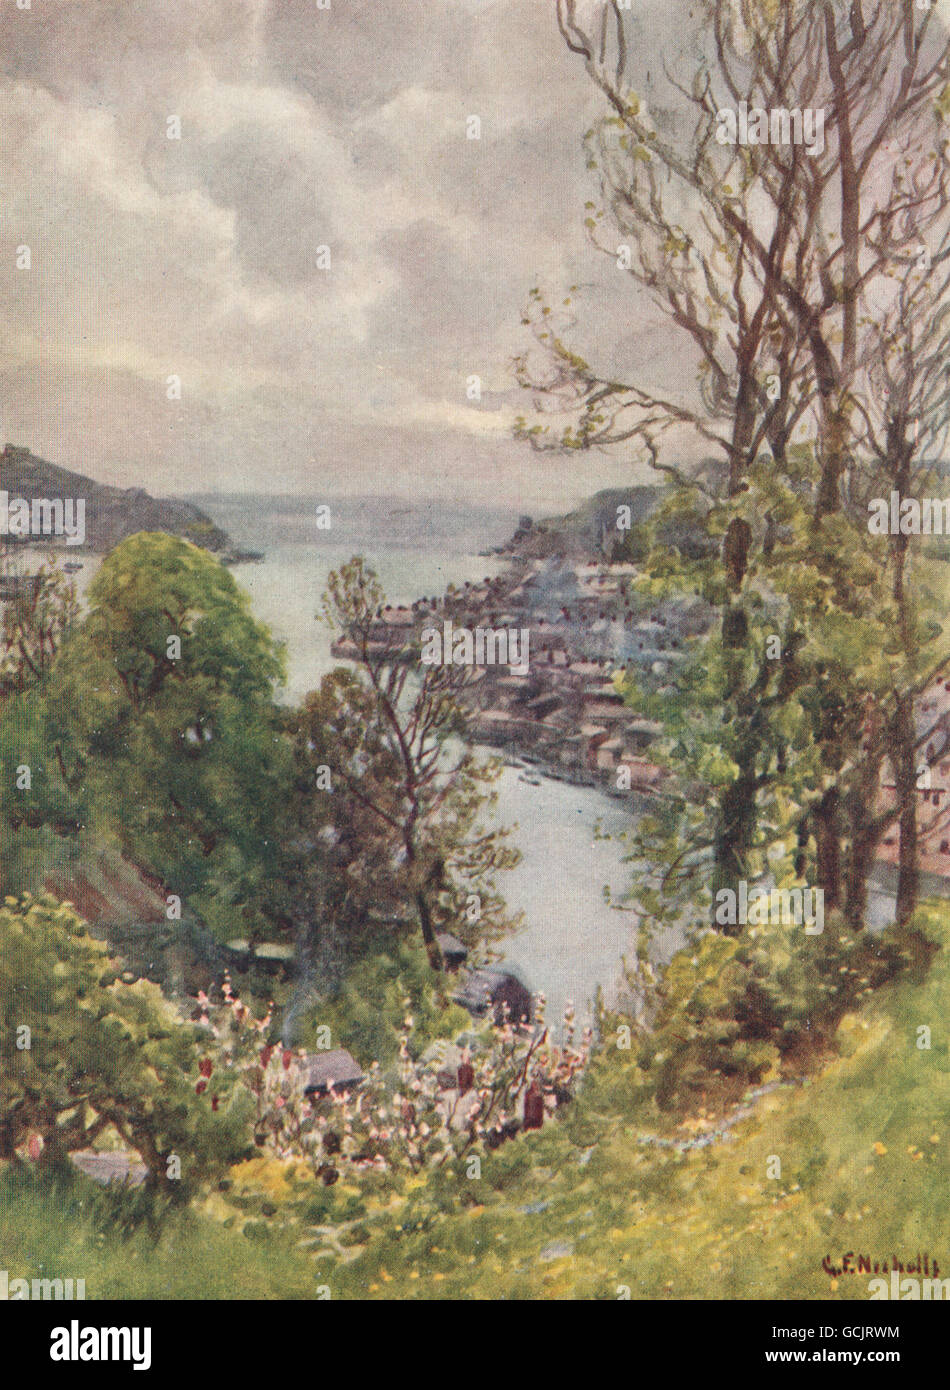 FOWEY. view of the town from Boddinock. Cornwall. By G. F. Nicholls, 1915 - Stock Image